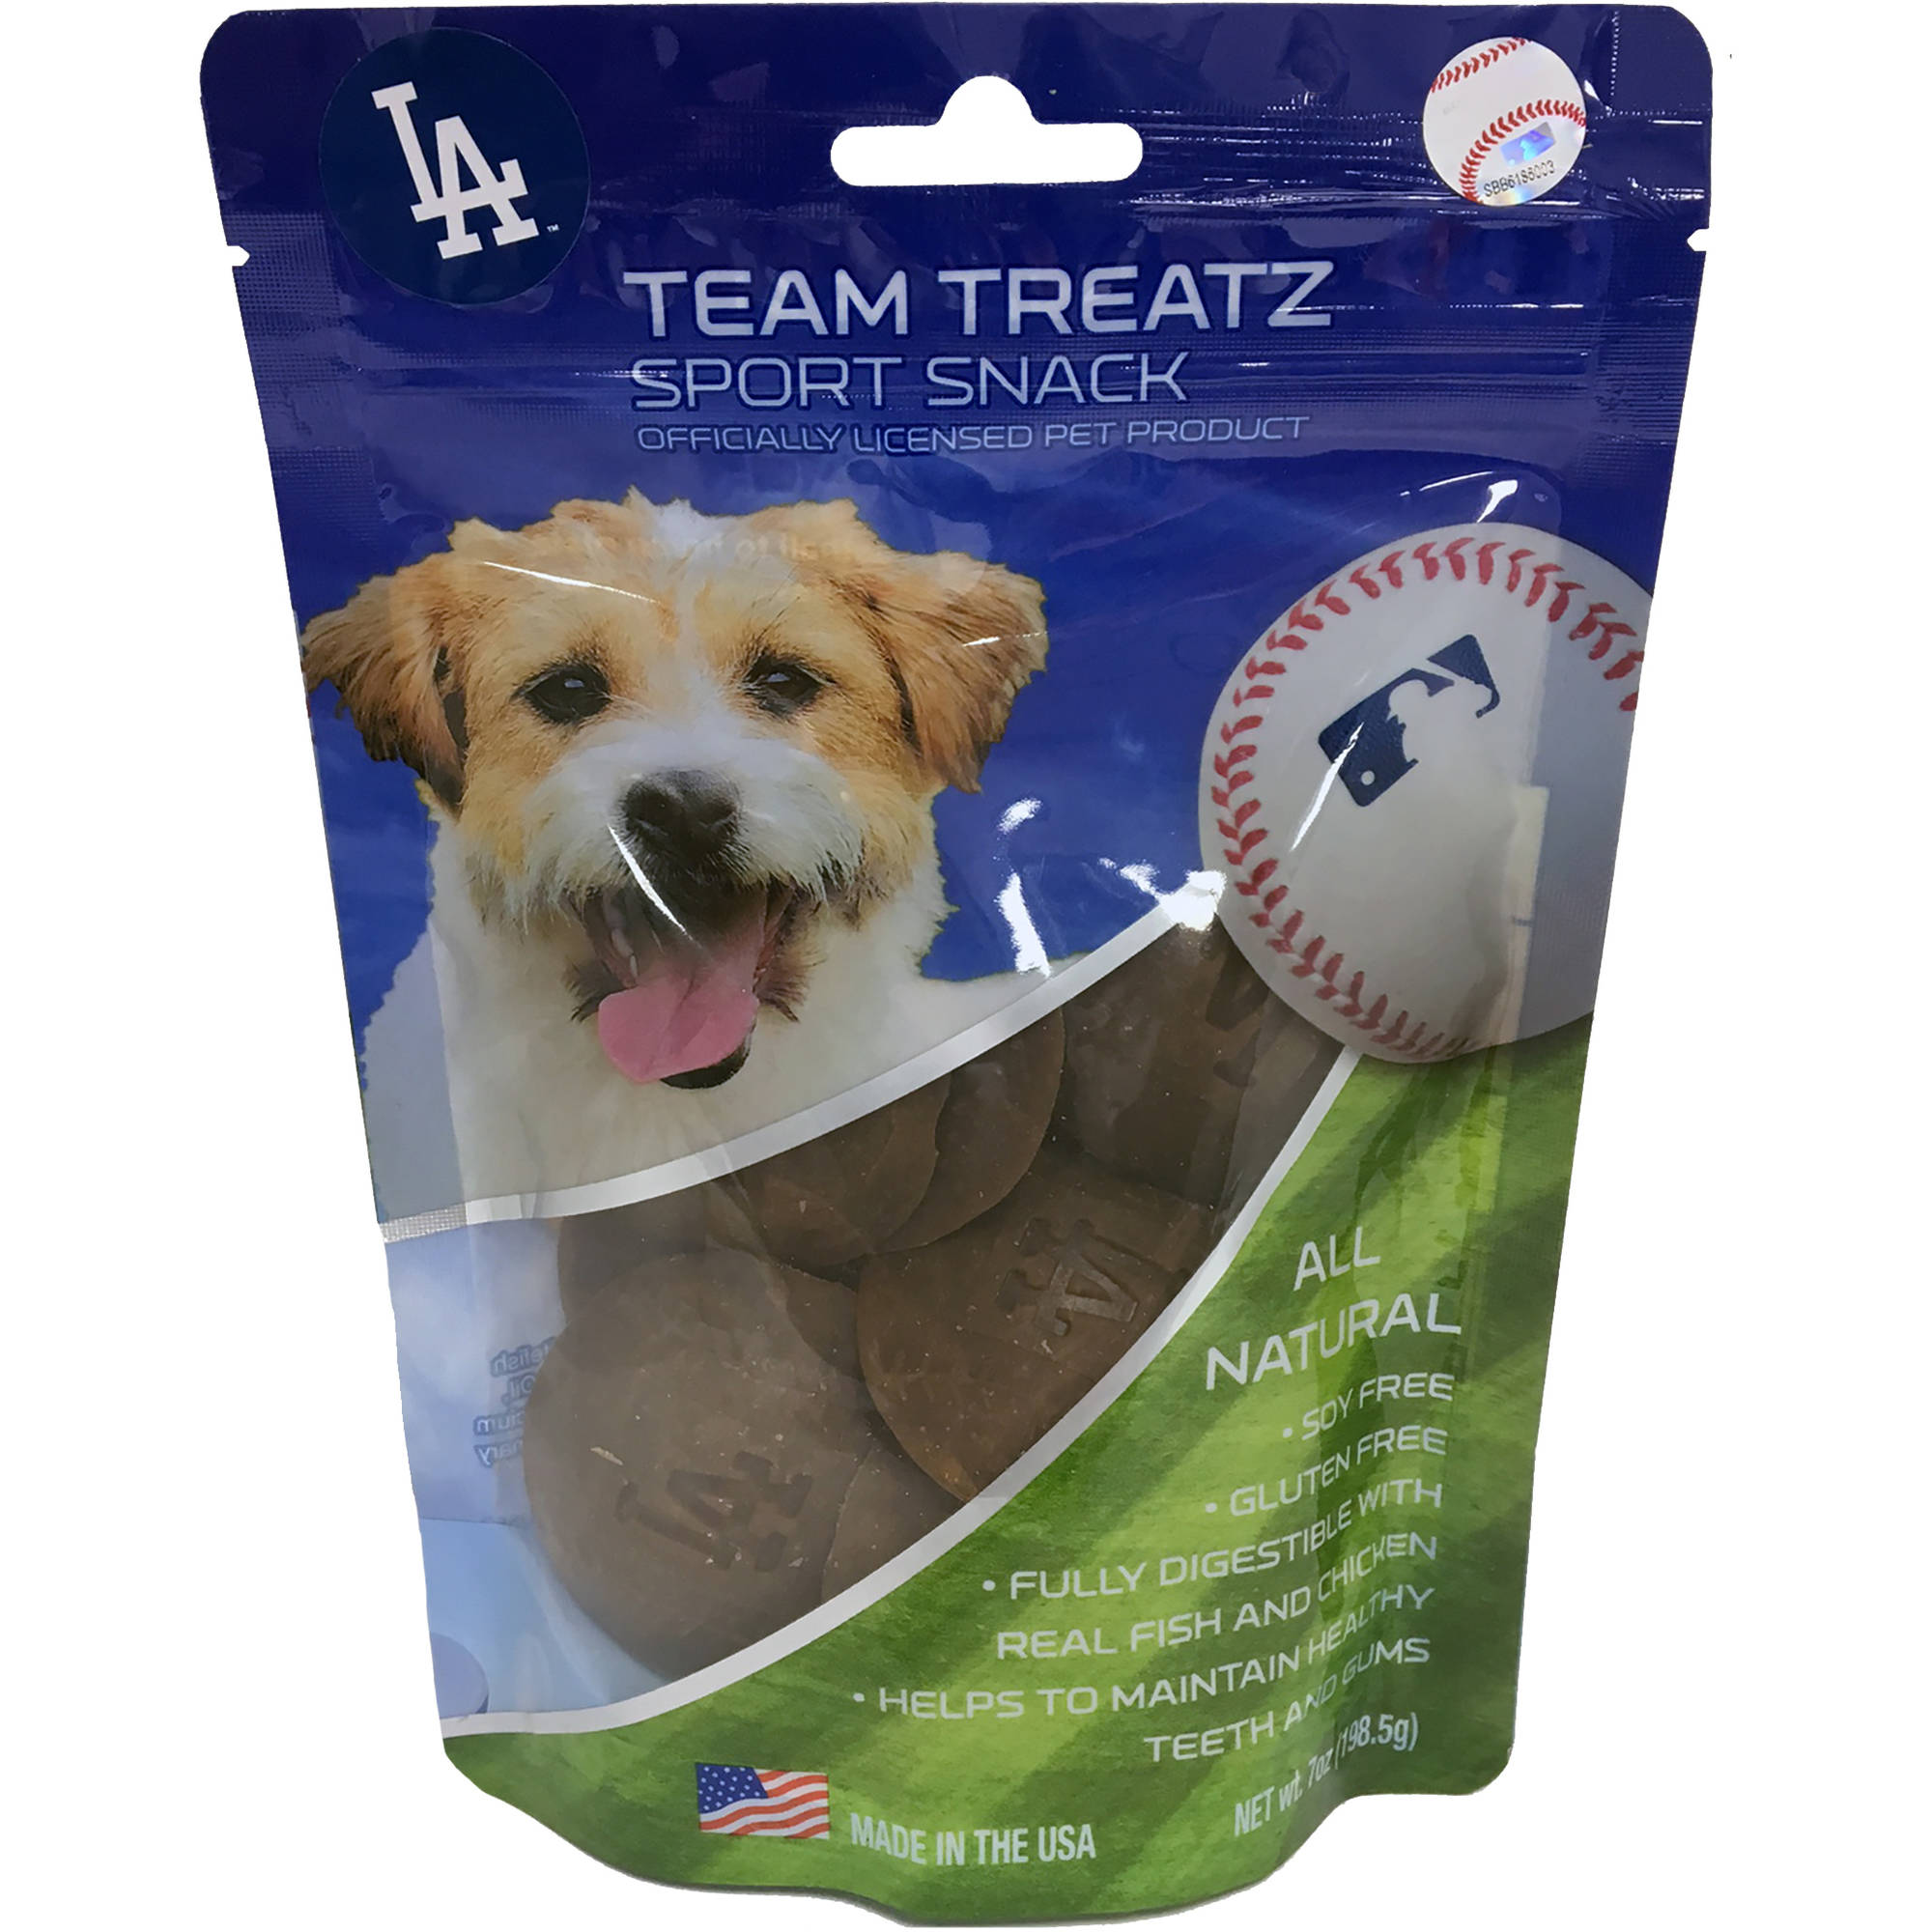 Pets First MLB Los Angeles Dogers Baseball Dog Treats, Delicious Cookies for Dogs, Baseball Reward for the Sporty PUP